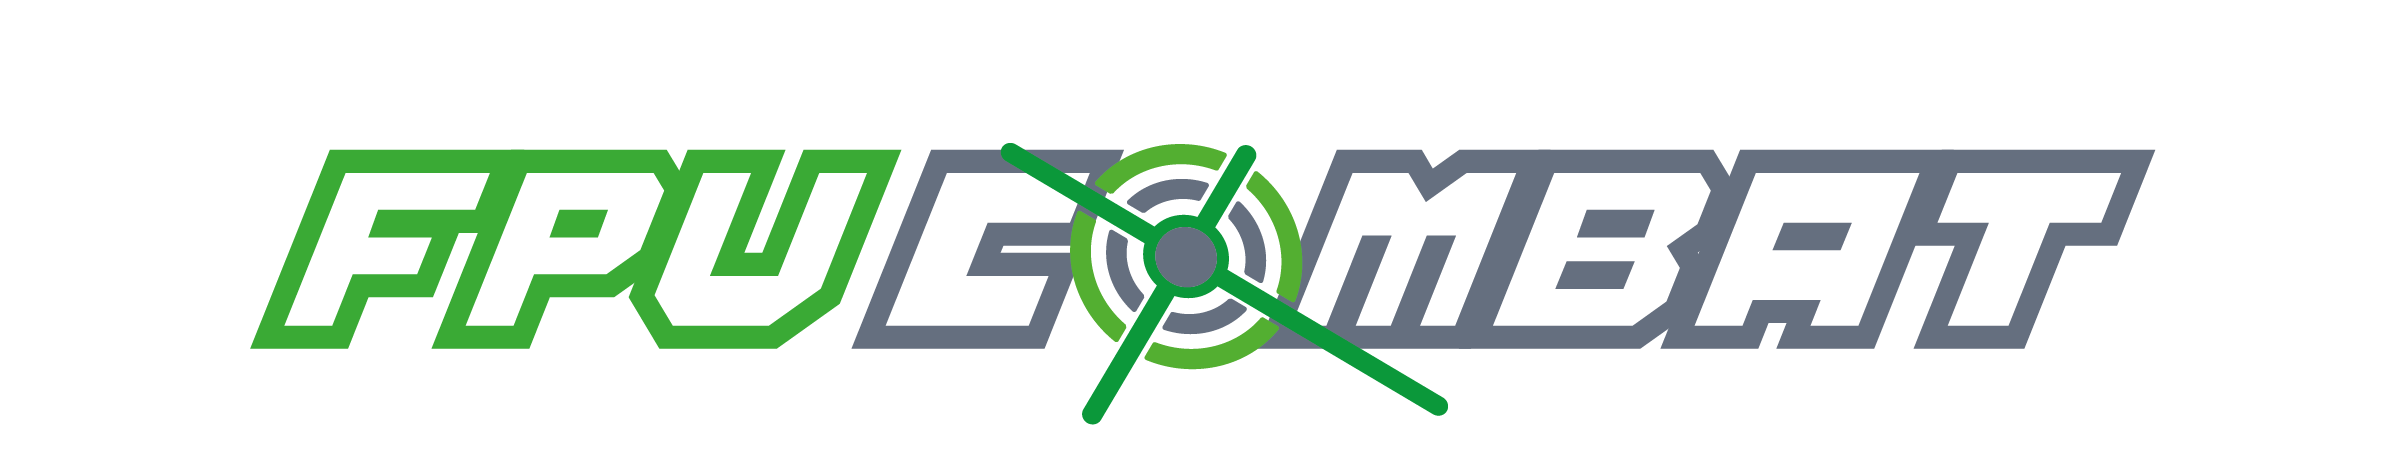 Sticky header logo